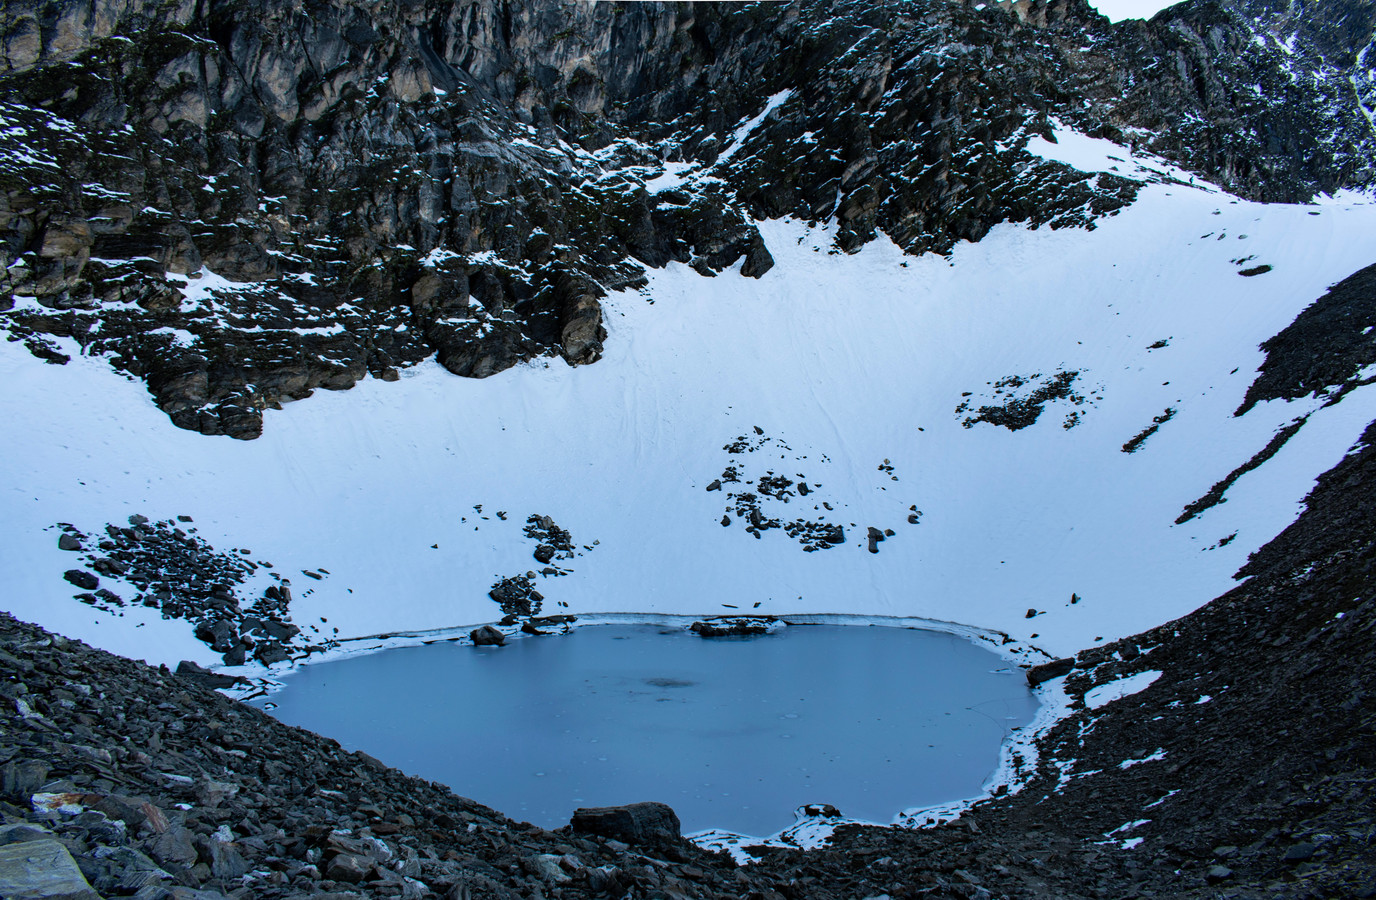 Le lac Roopkund